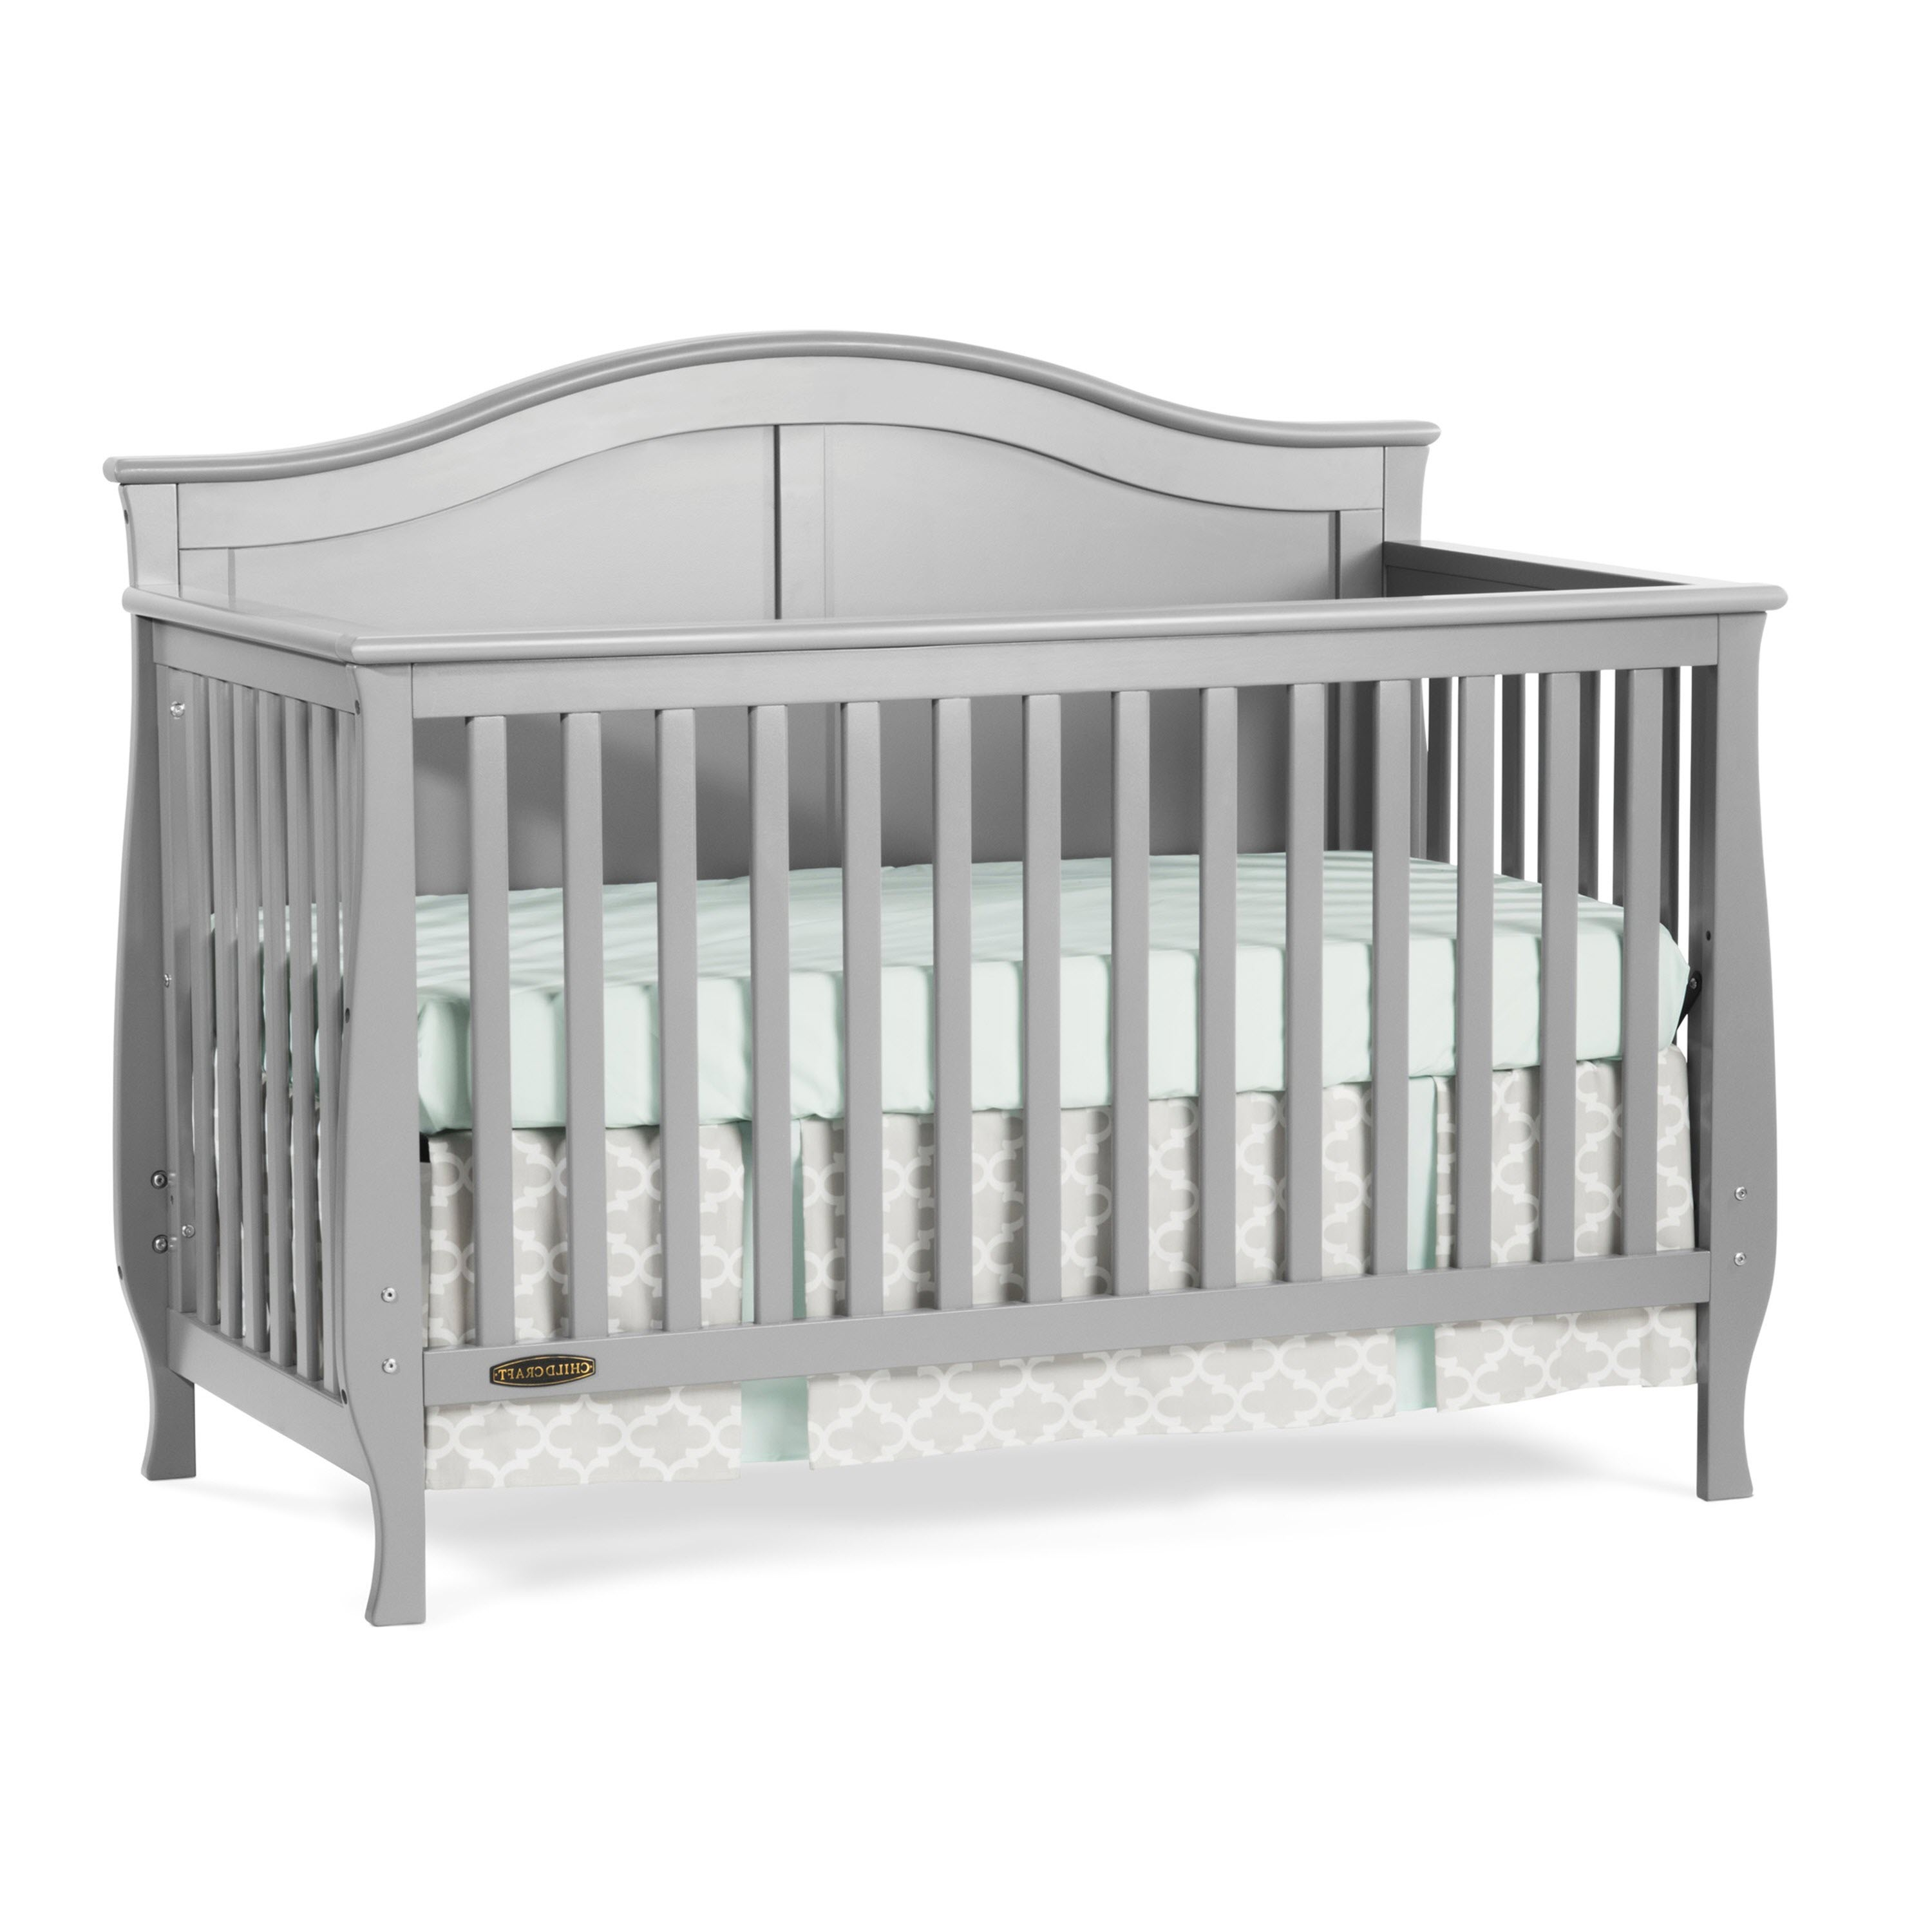 Used crib for sale edmonton - Child Craft Camden 4 In 1 Lifetime Convertible Crib Matte White